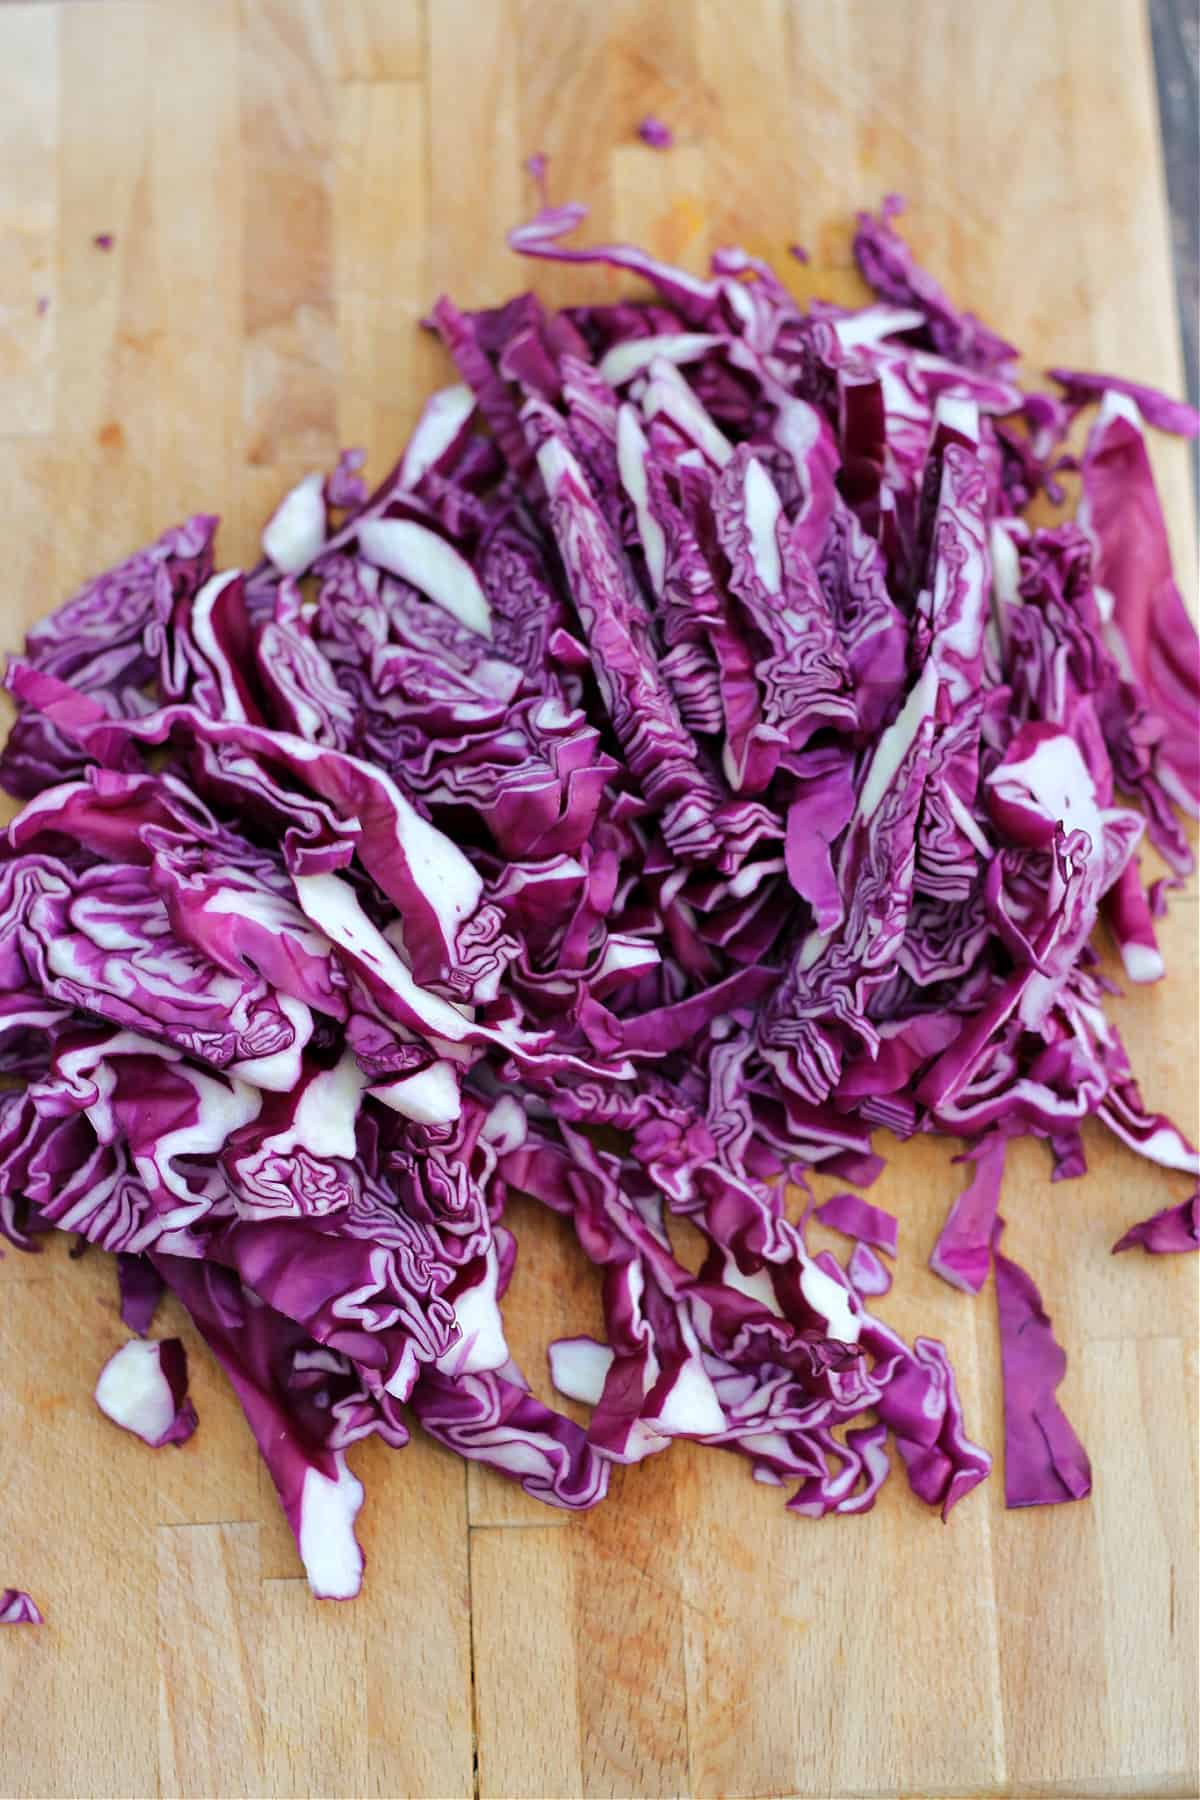 Finely shredded red cabbage on a wooden chopping board.